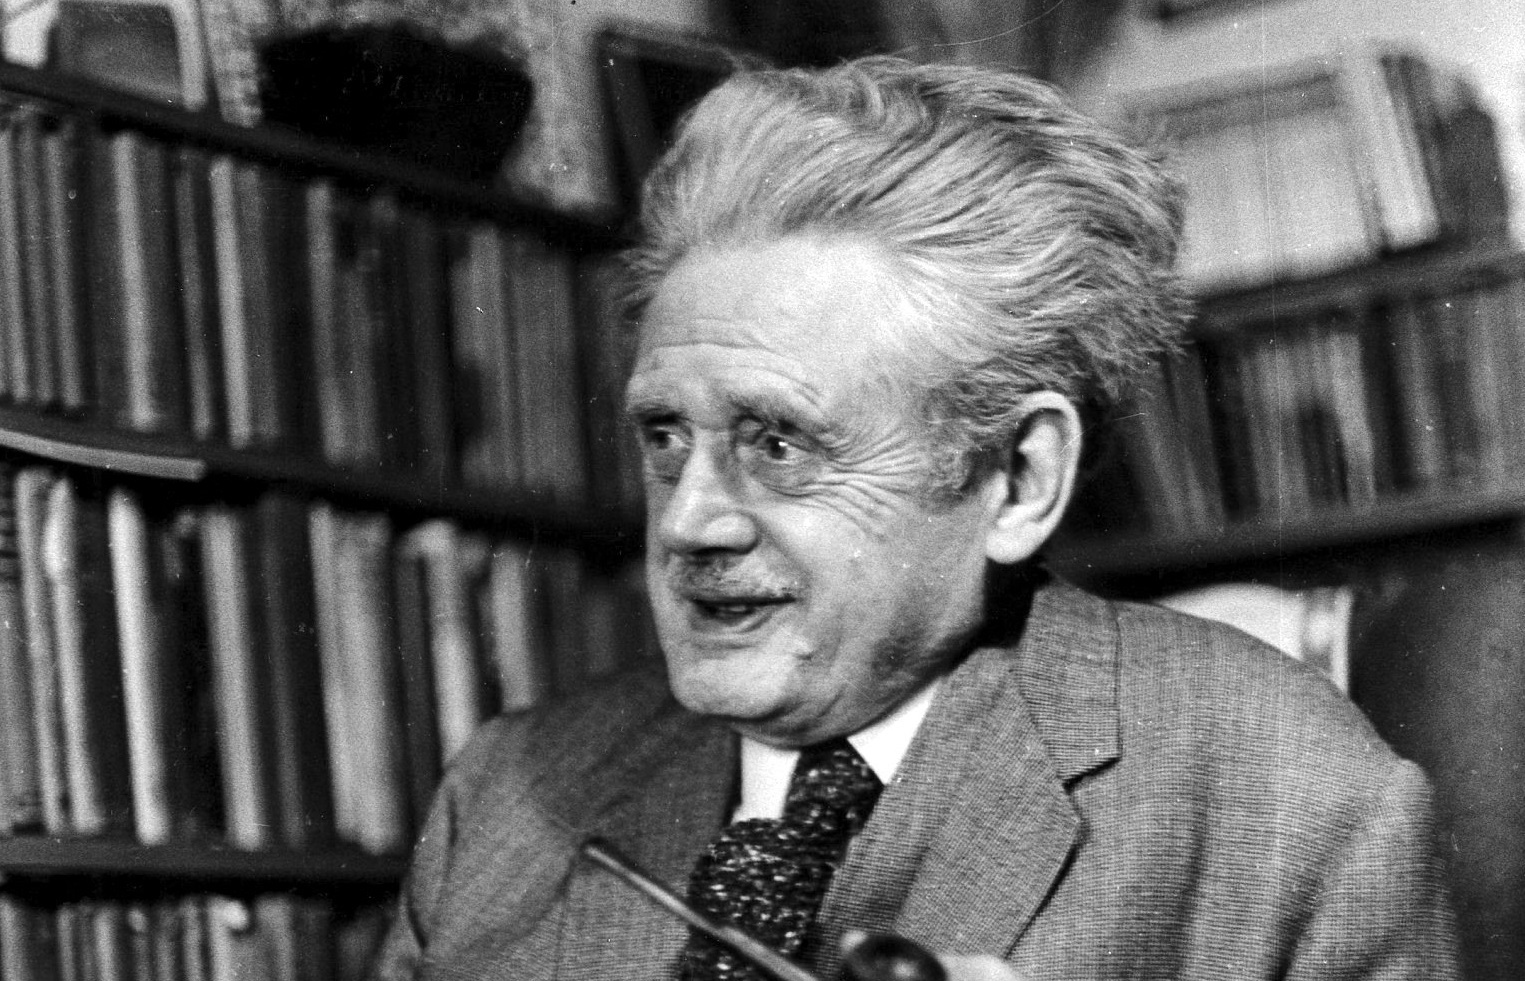 In Memoriam James Joyce, by Hugh MacDiarmid, overflows with an almost unending wealth of references